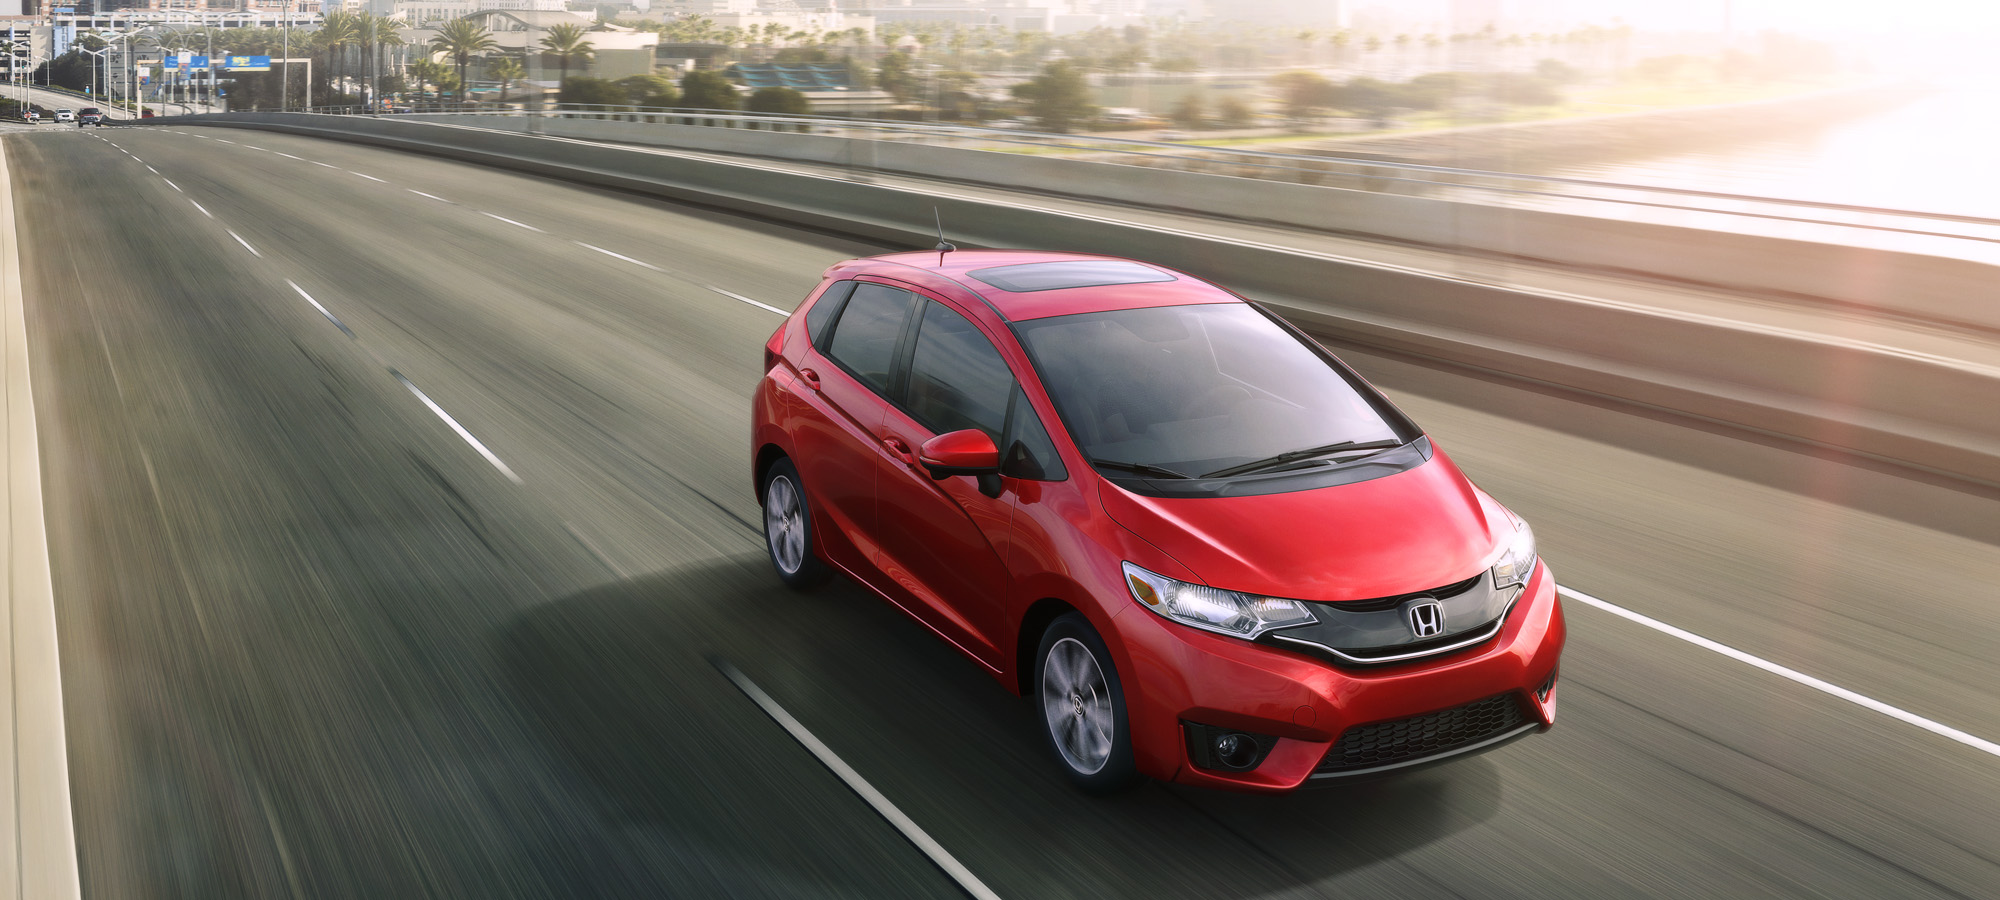 2016 Honda Fit For Sale in Glendale, WI